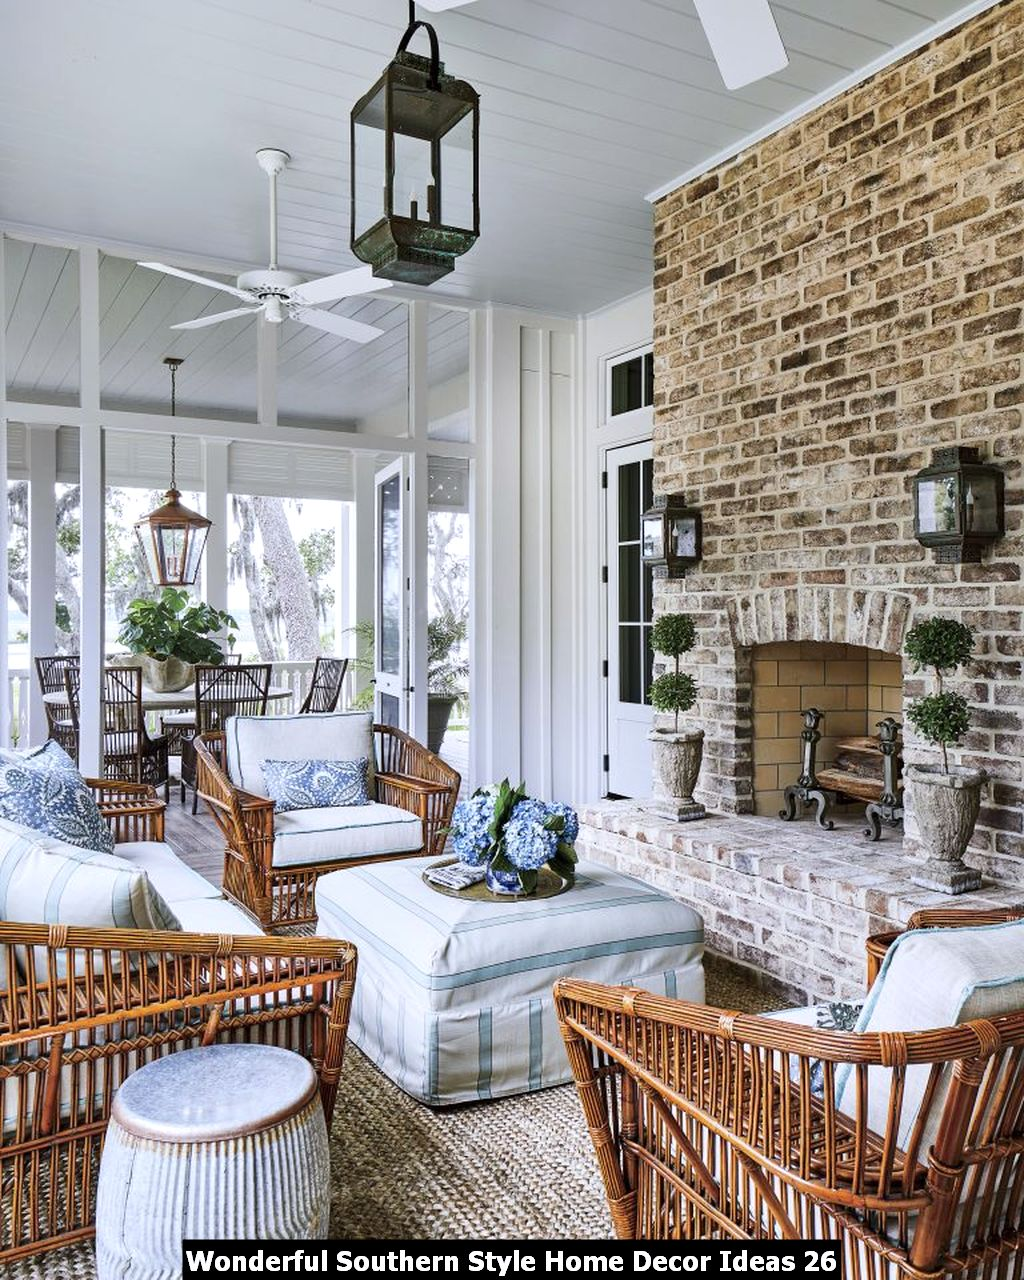 Wonderful Southern Style Home Decor Ideas 26